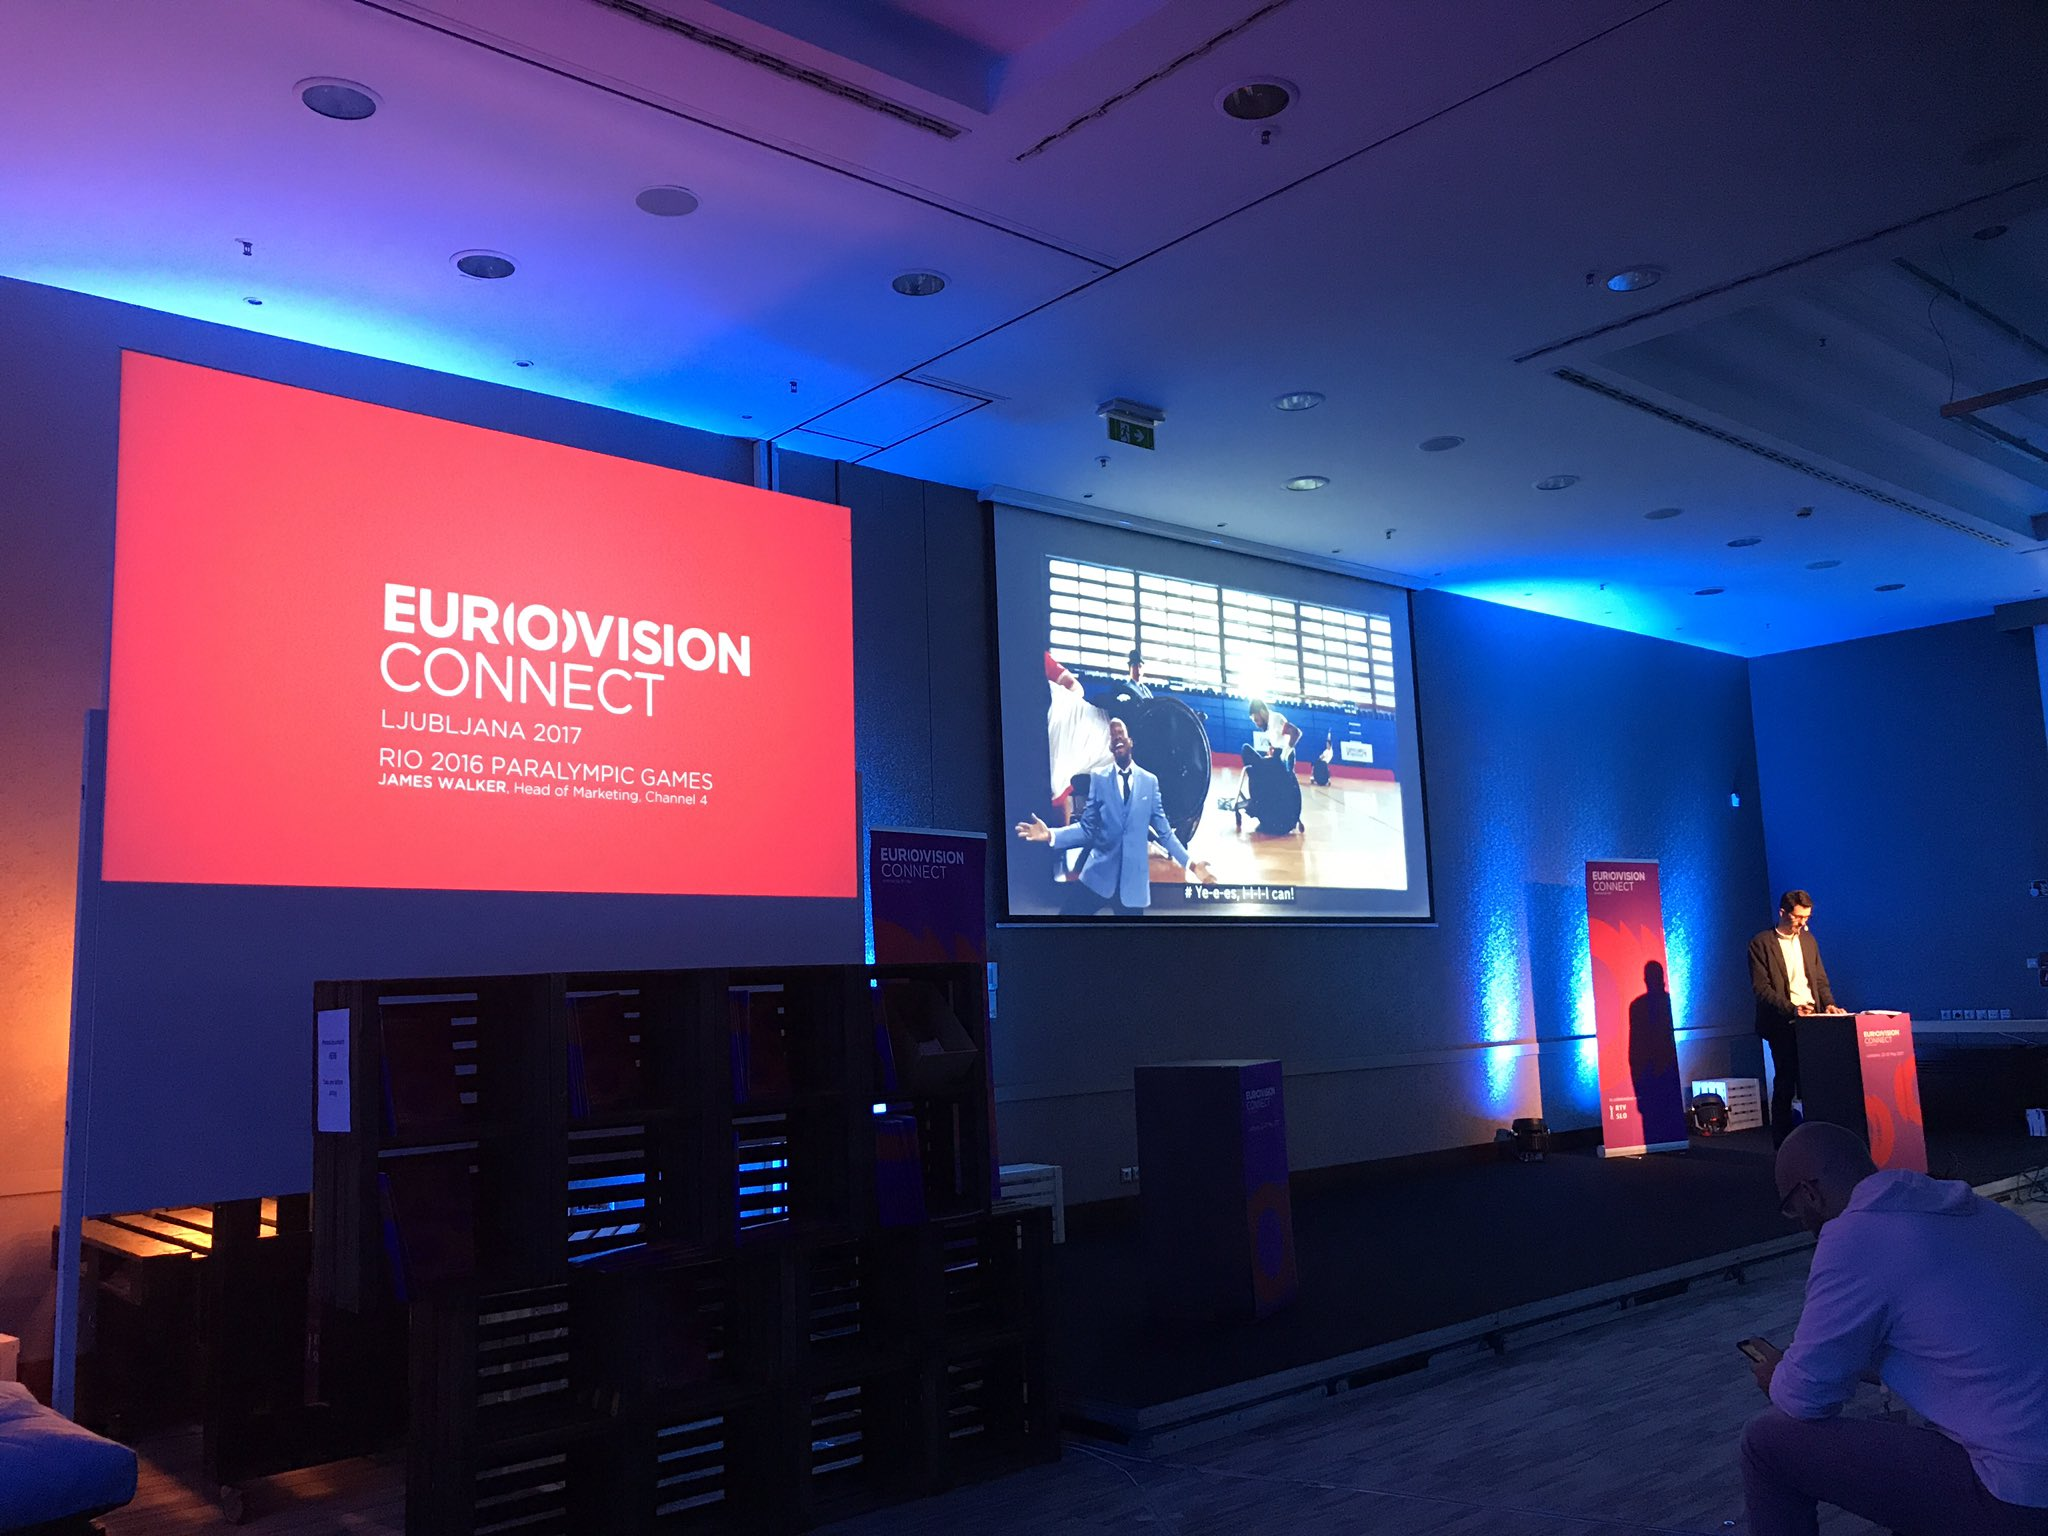 Speaking at #EurovisionConnect in Slovenia today and now hearing from our friends from @Channel4 https://t.co/GFyE21282g